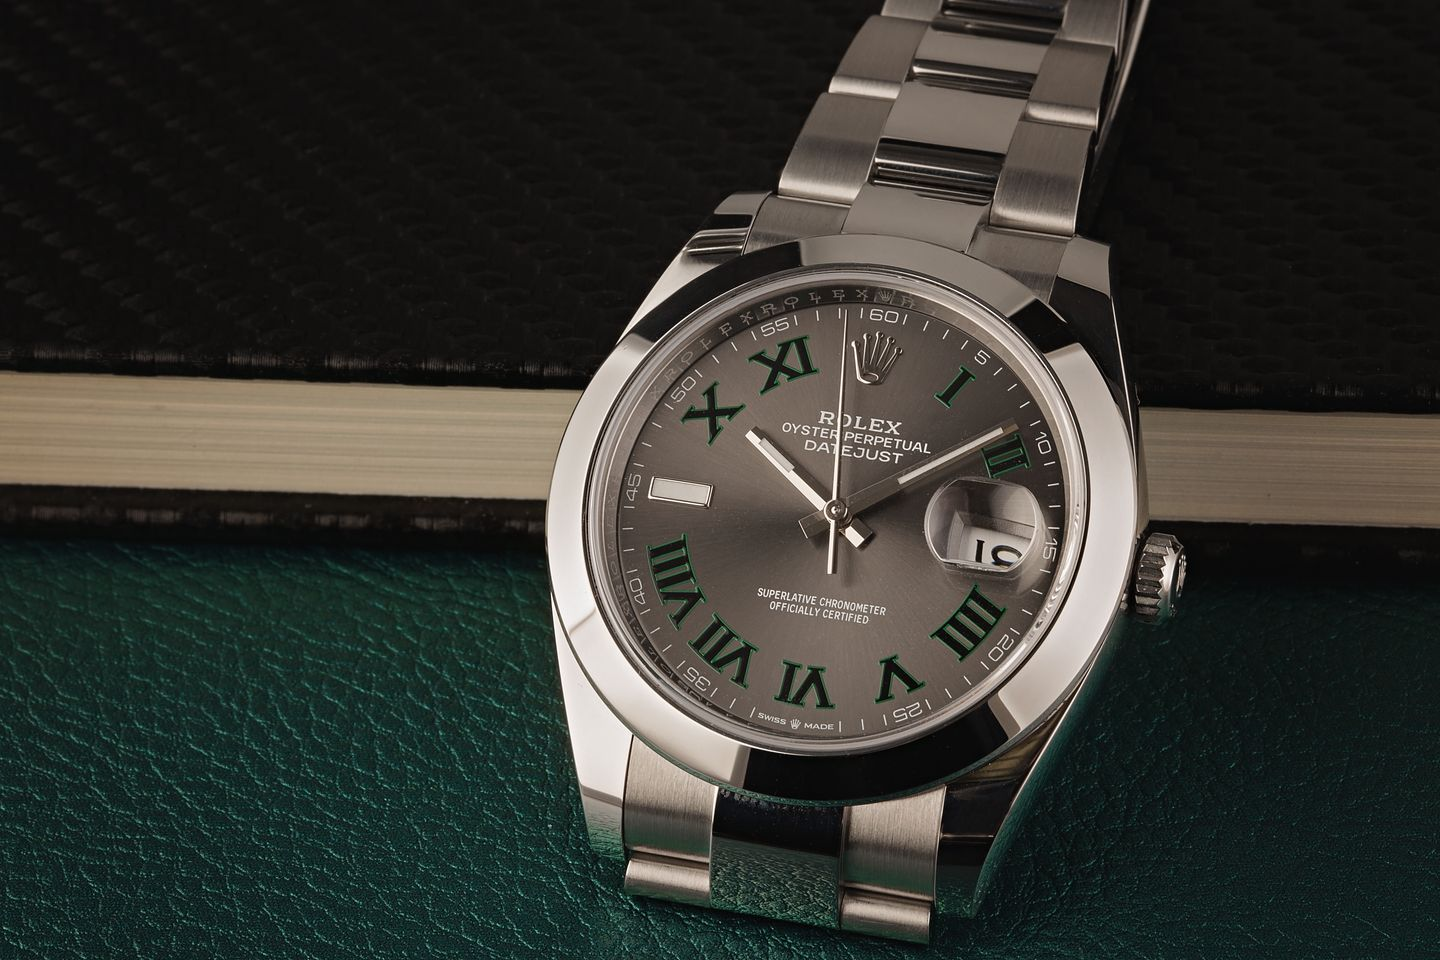 Rolex Datejust 41 vs Datejust II Comparison Guide